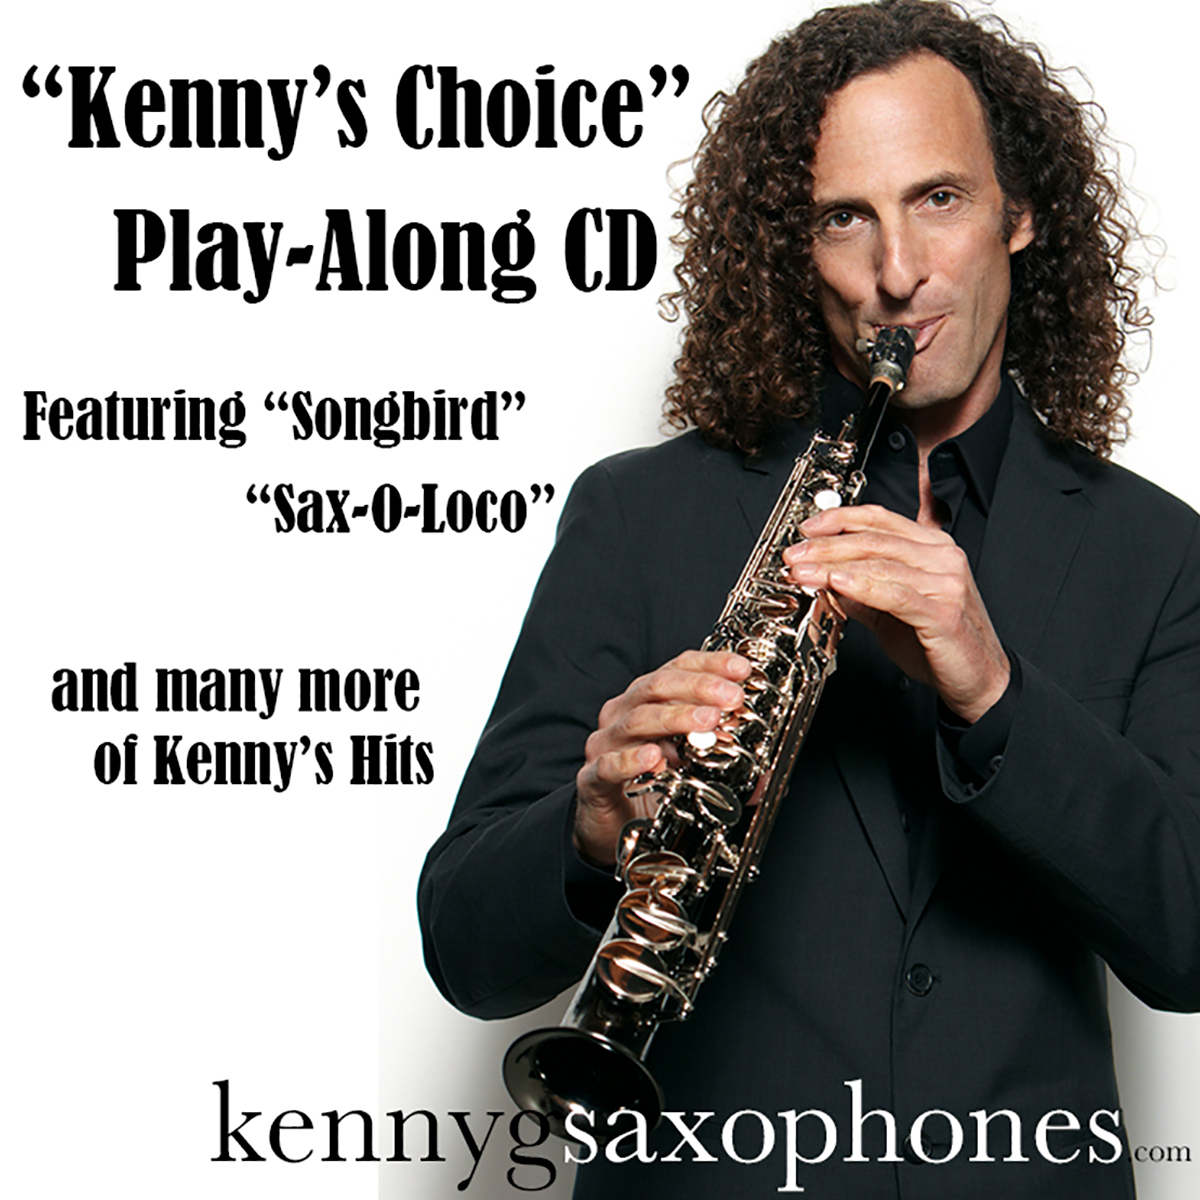 Kenny's Choice Play-Along CD